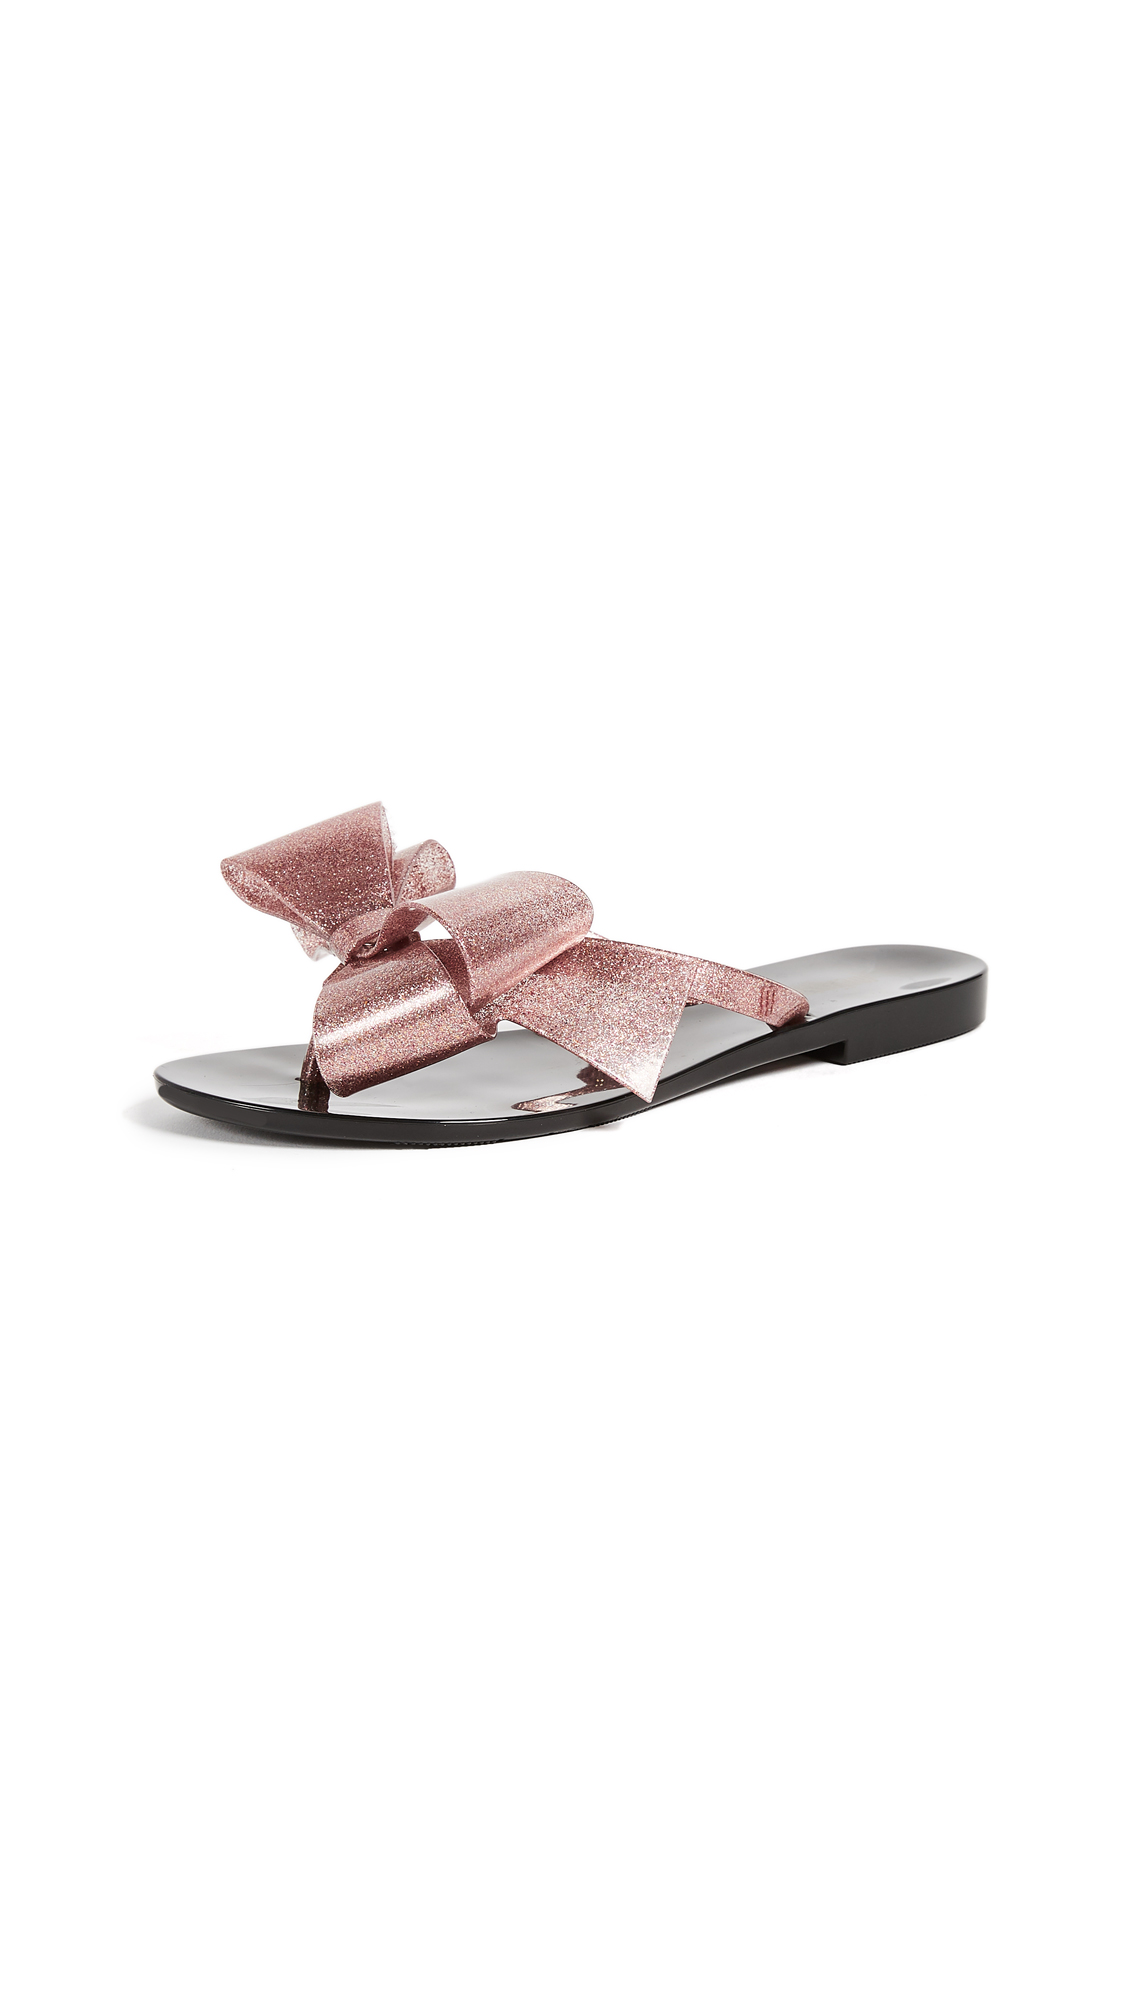 Melissa Harmonic Bow Thong Sandals - Black Rose Glitter